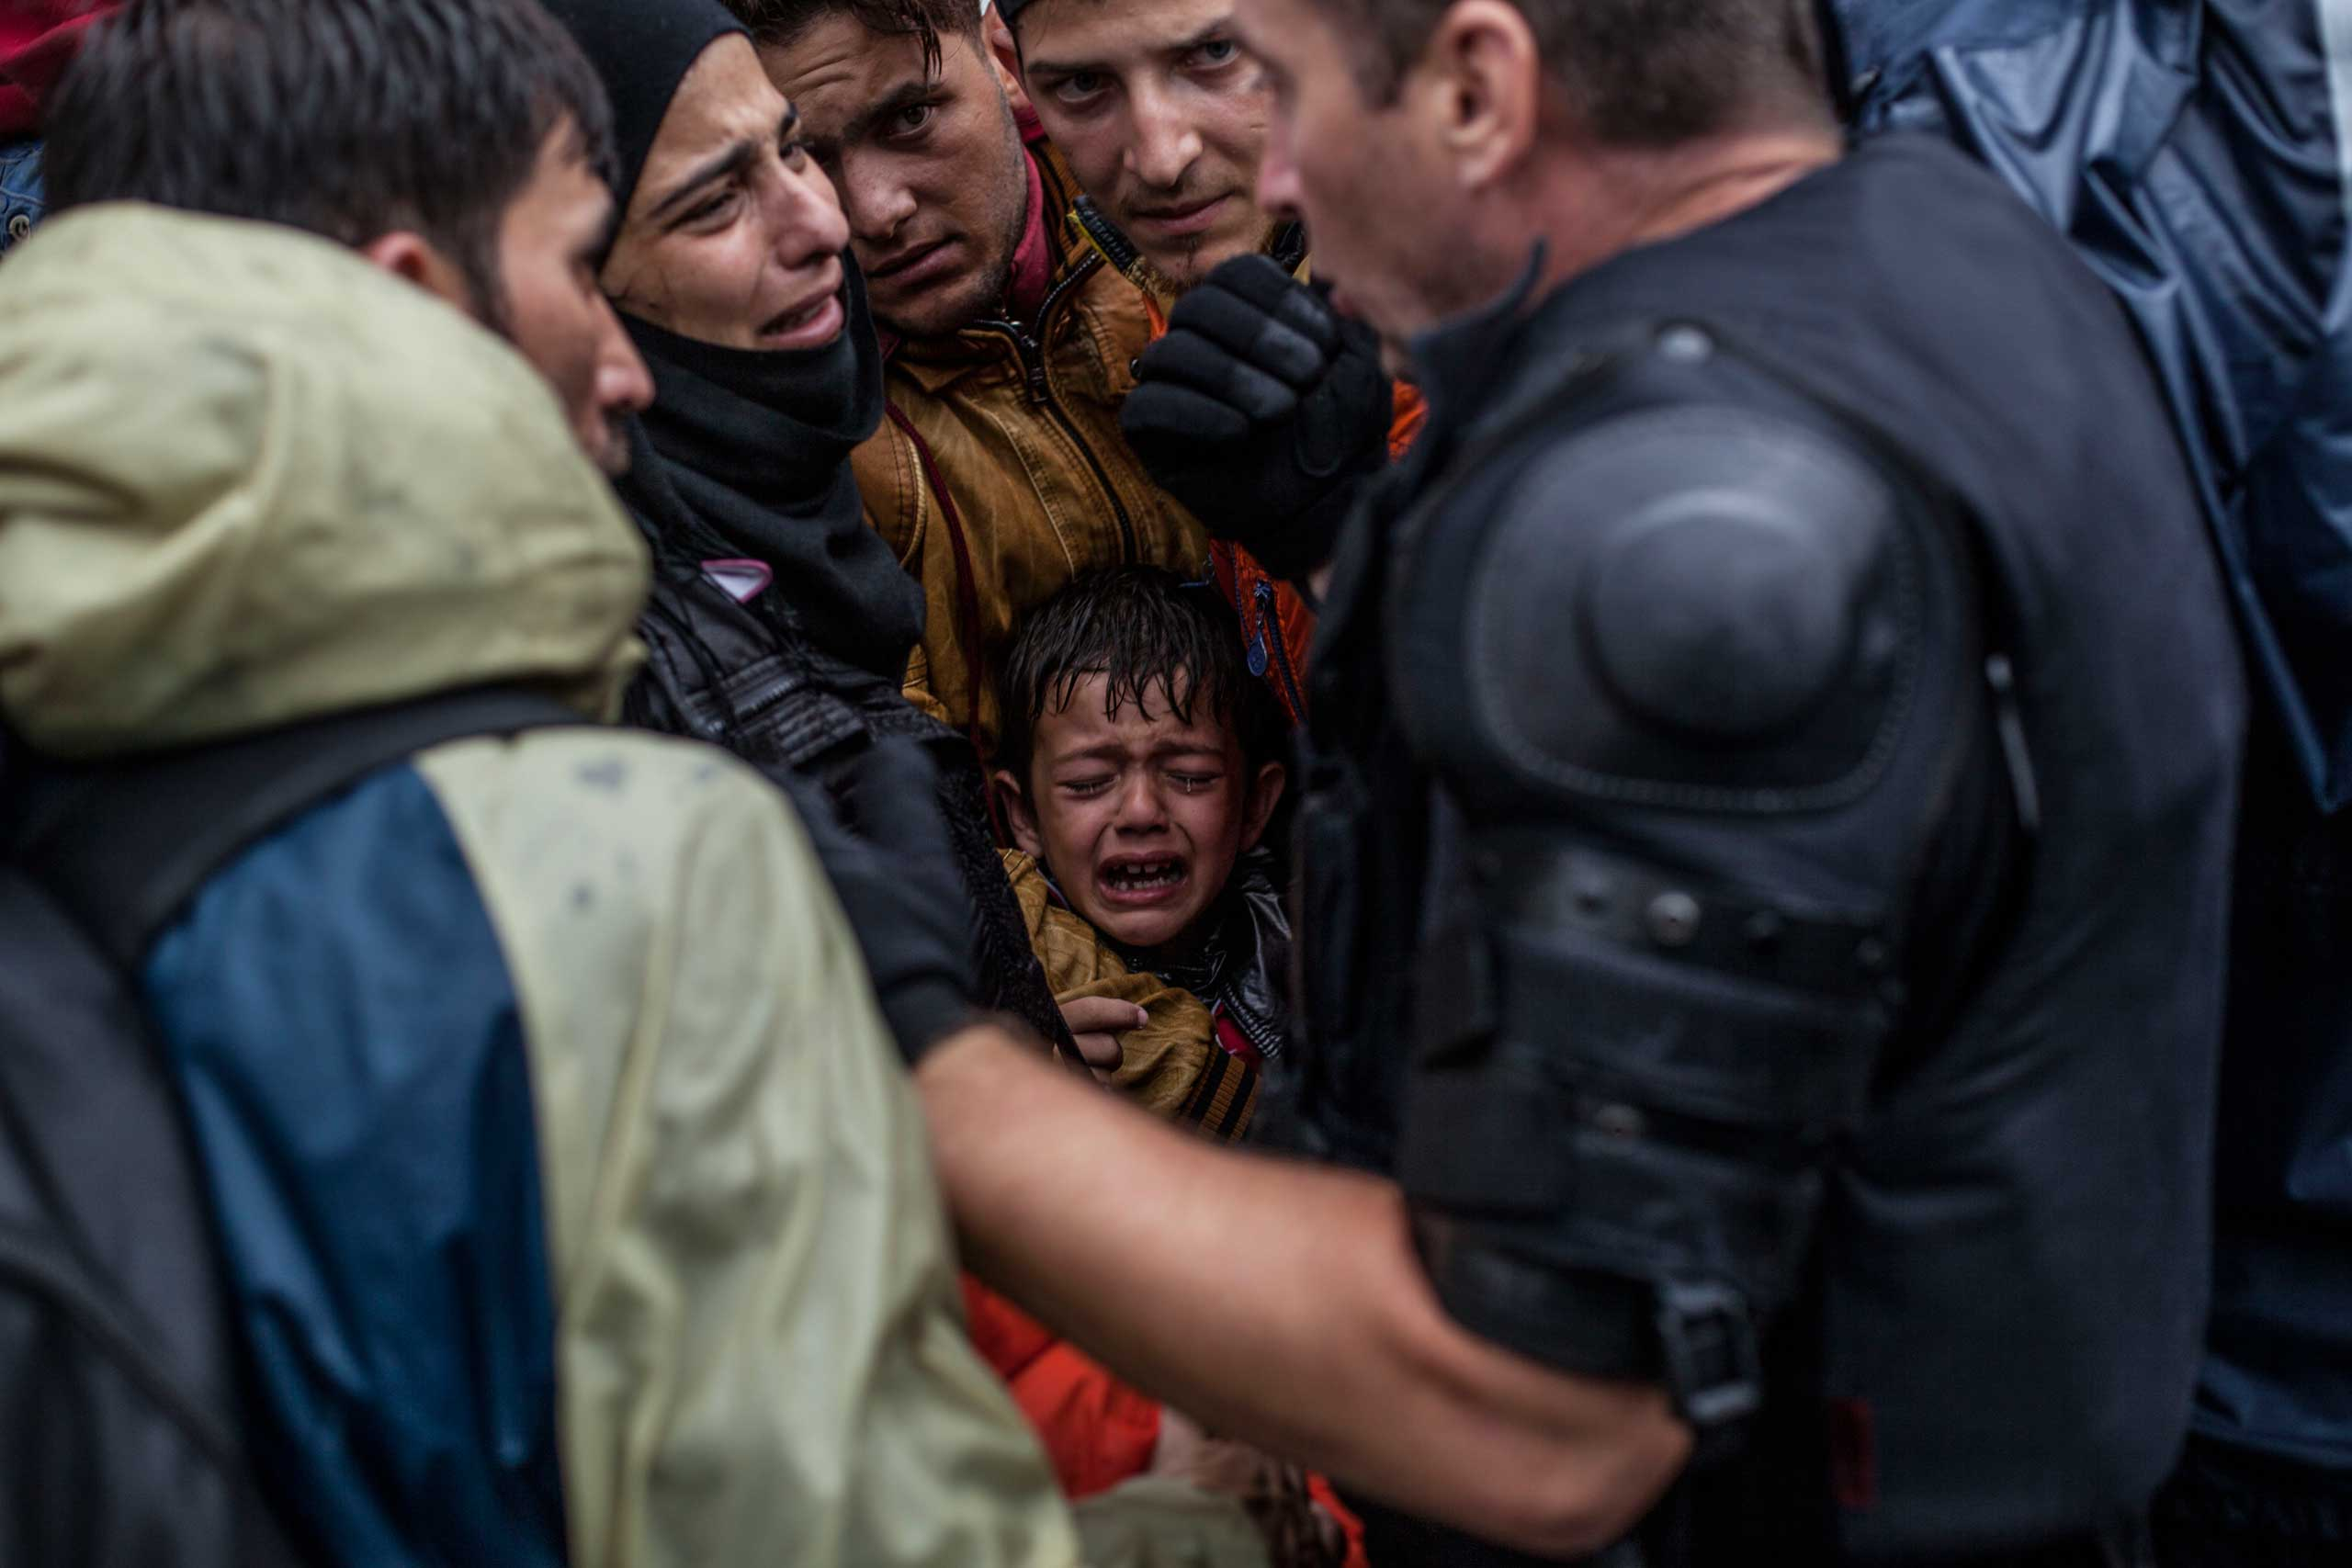 A Syrian refugee boy cries while he and his family try to board a train at the station in Tovarnik, Croatia, on Sept. 20, 2015.